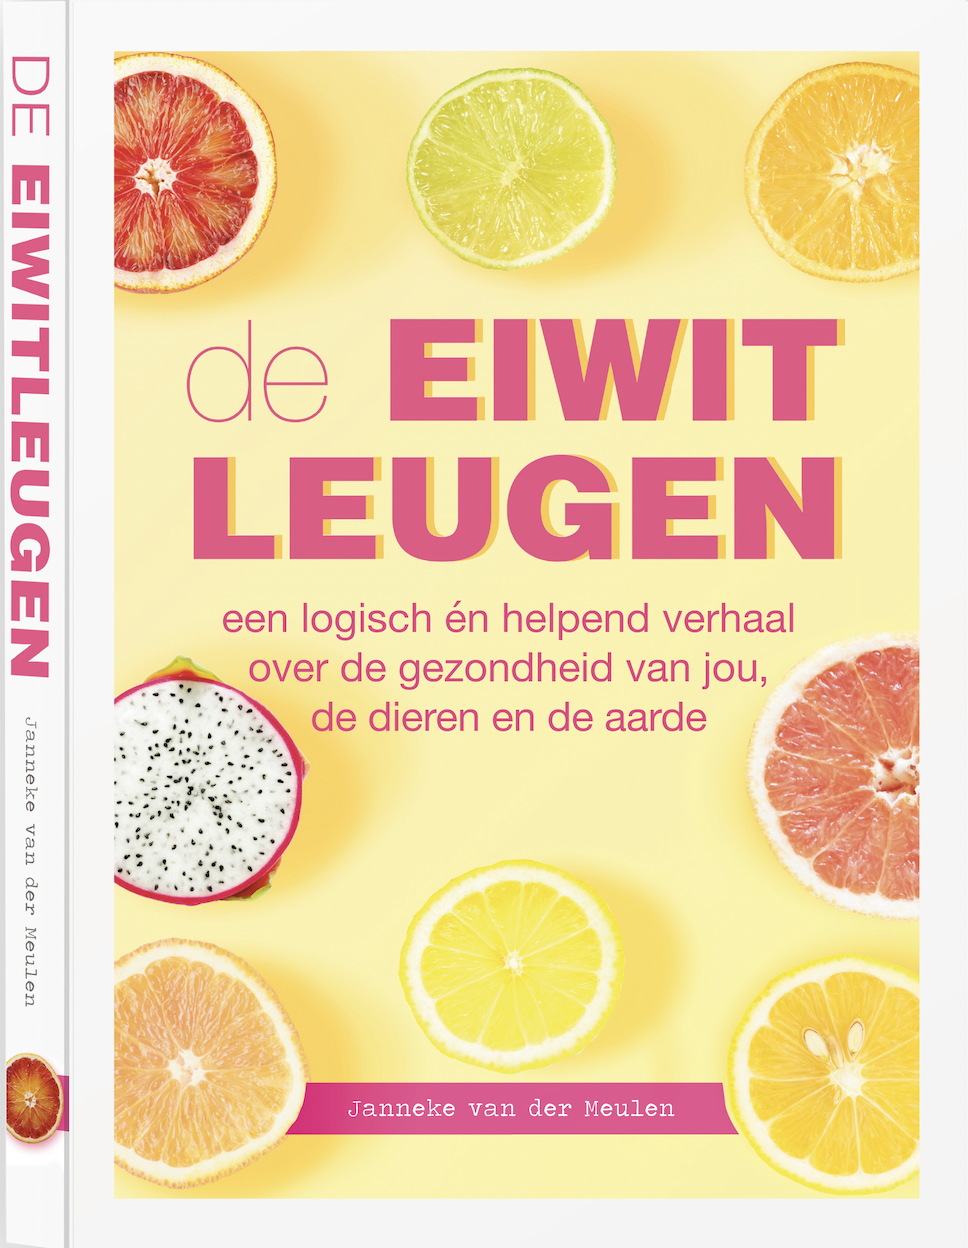 COVER DE EIWITLEUGEN WEBSITE